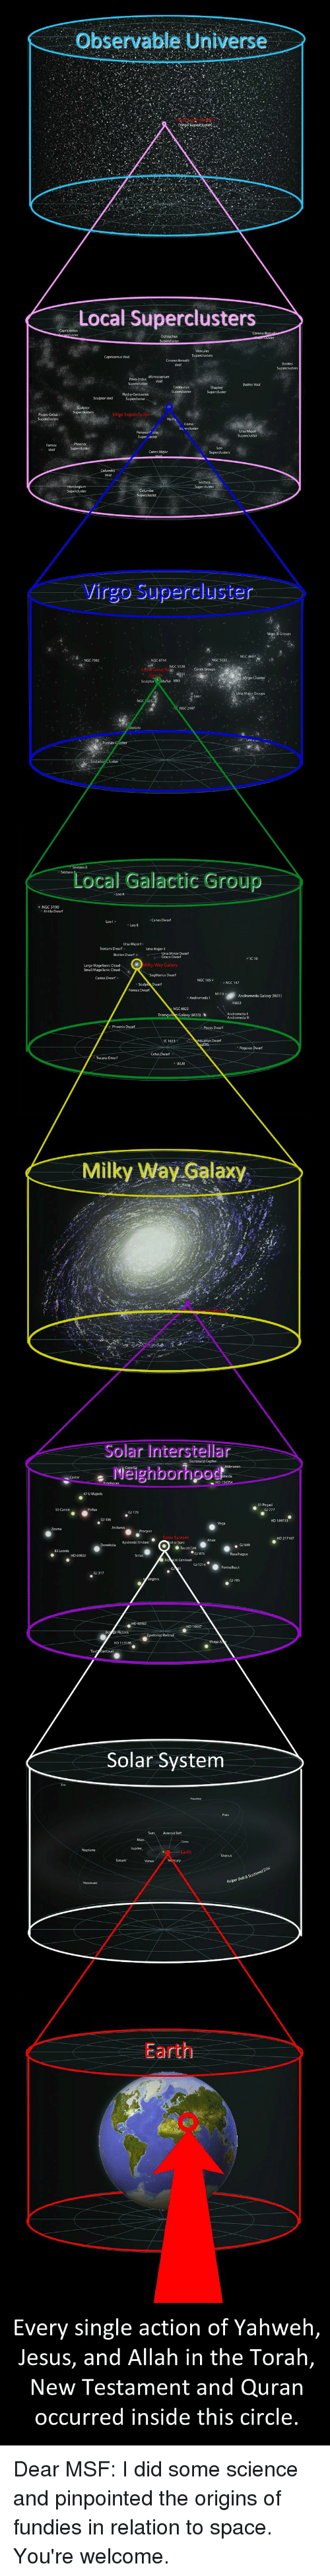 new testament: Observable Universe  Local Superclusters  Virgo Supercluster  Local Galactic Group  Milky Way Galaxy  Solar Interstellar  eighborhood  Solar system  Earth  Every single action of Yahweh,  Jesus, and Allah in the Torah,  New Testament and Quran  occurred inside this circle. Dear MSF: I did some science and pinpointed the origins of fundies in relation to space. You're welcome.